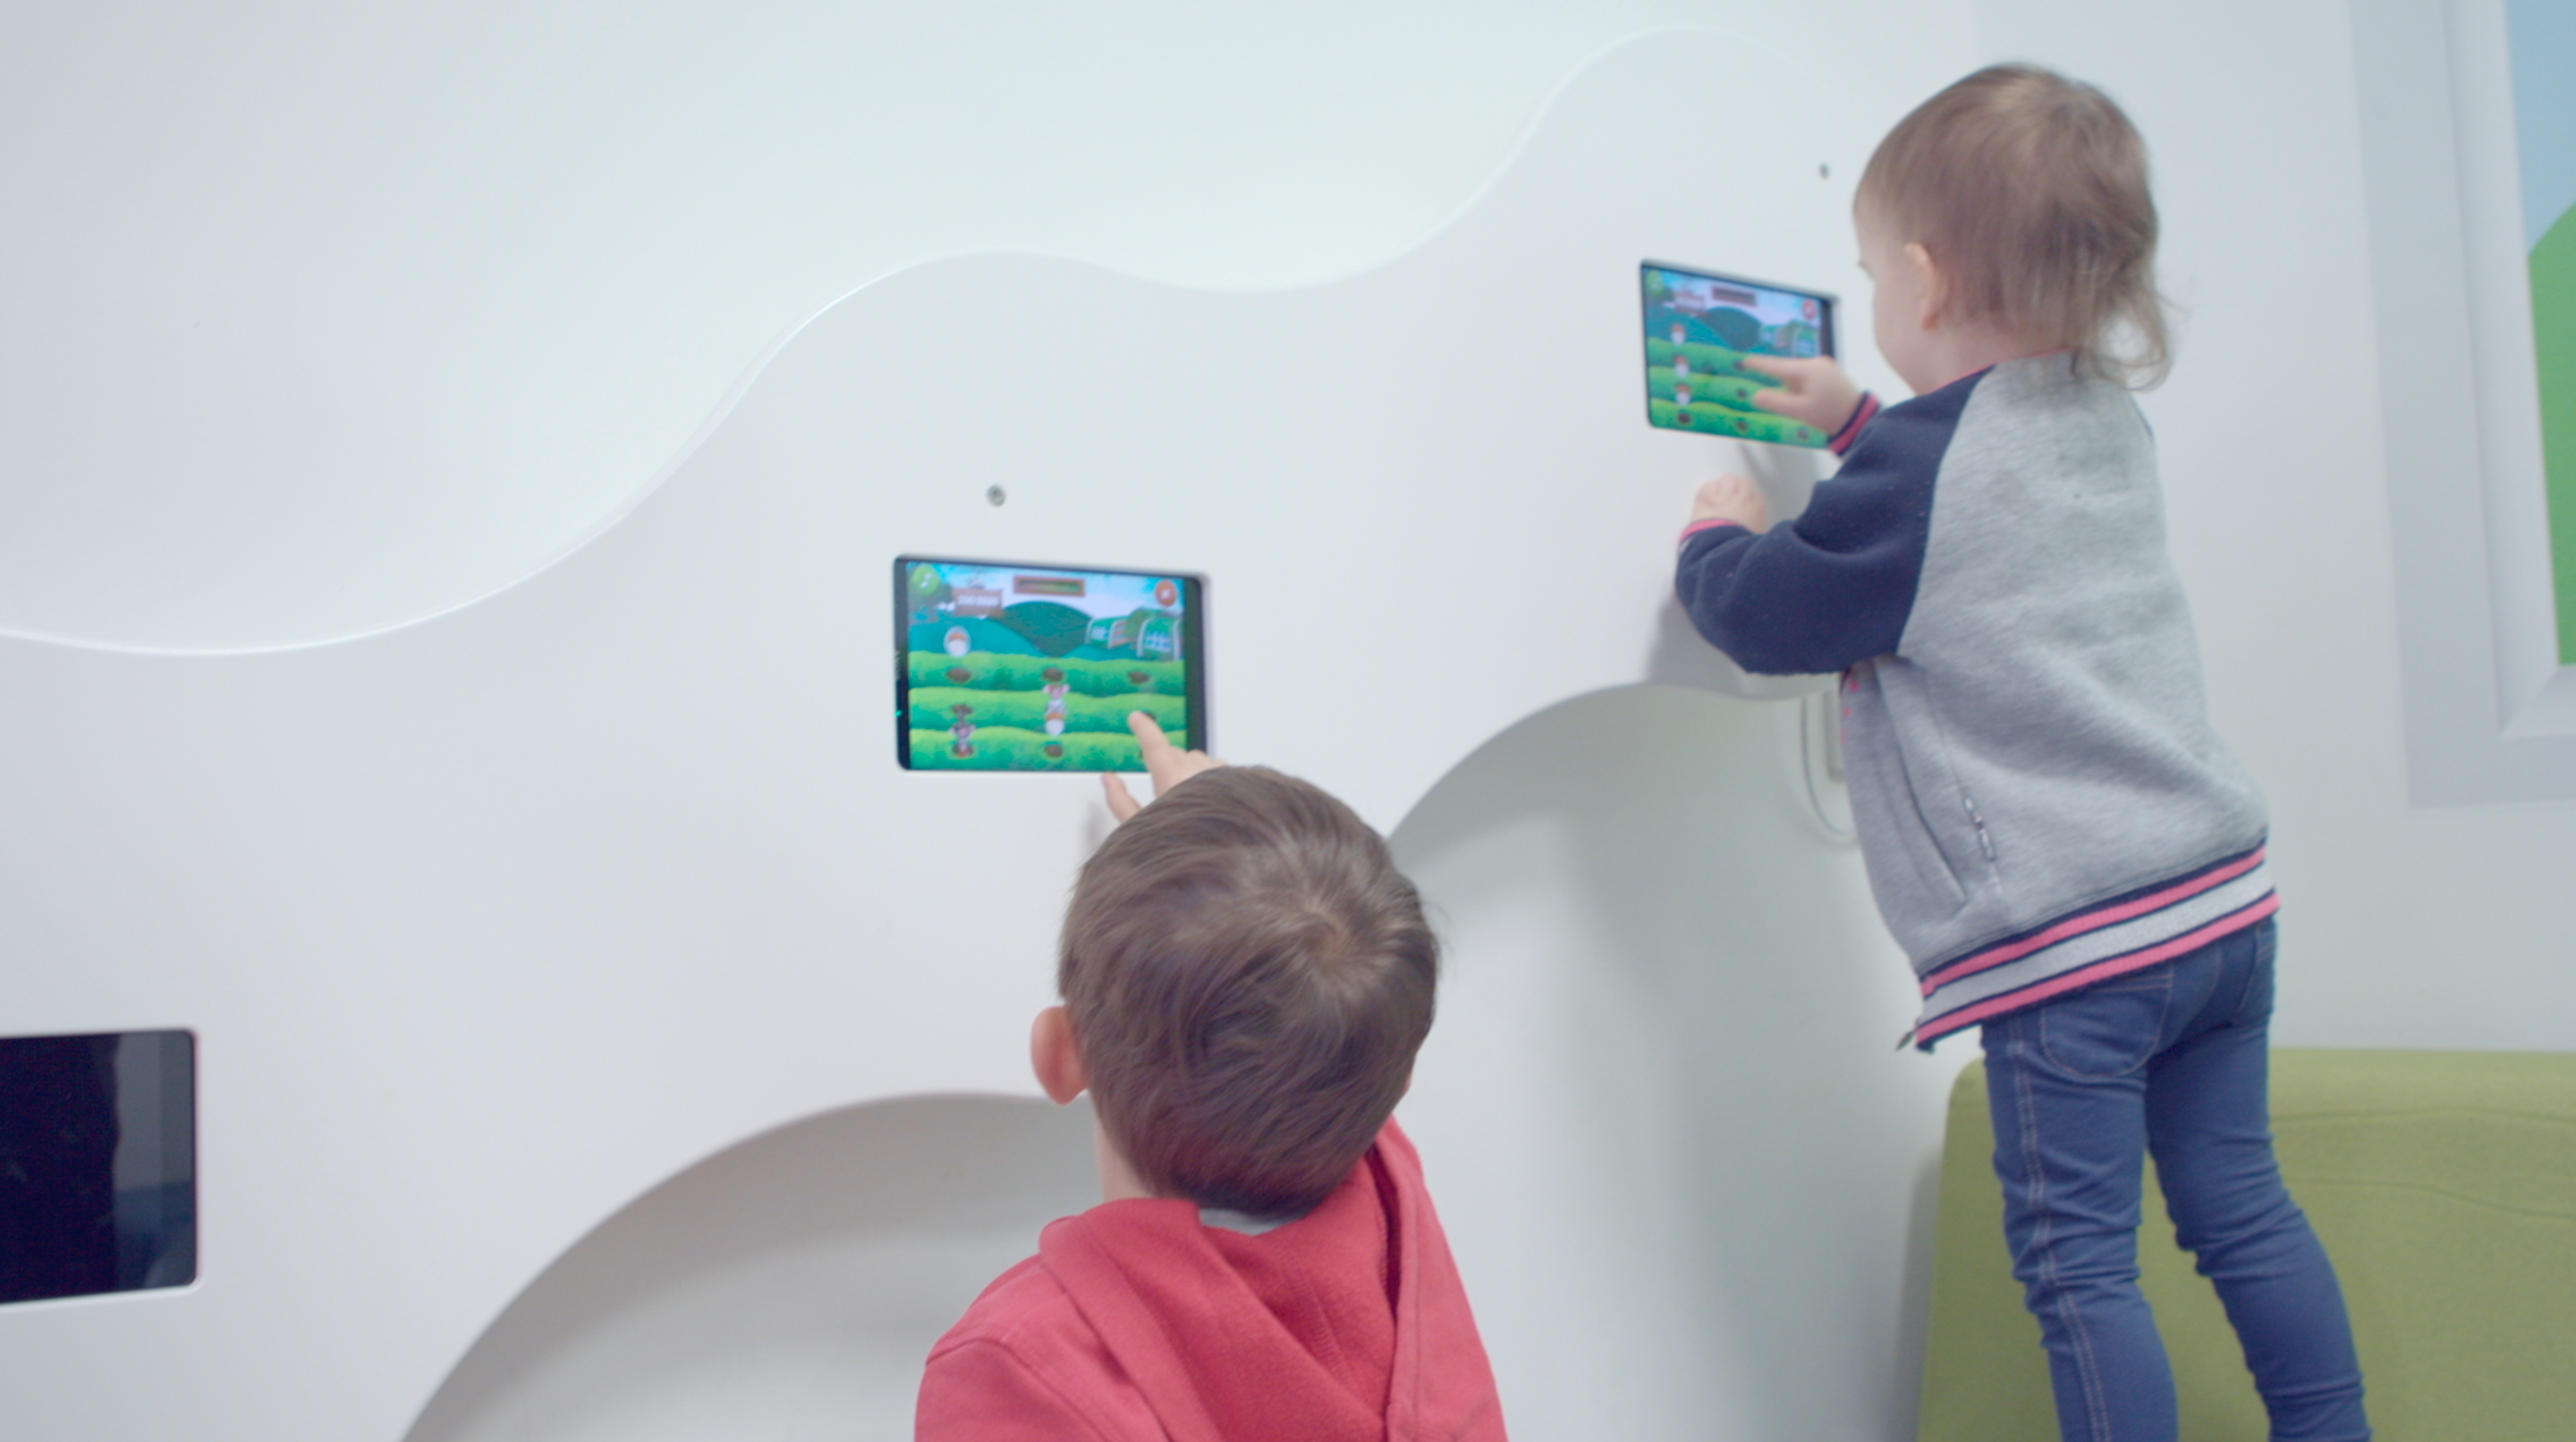 Two children playing on small touch screens